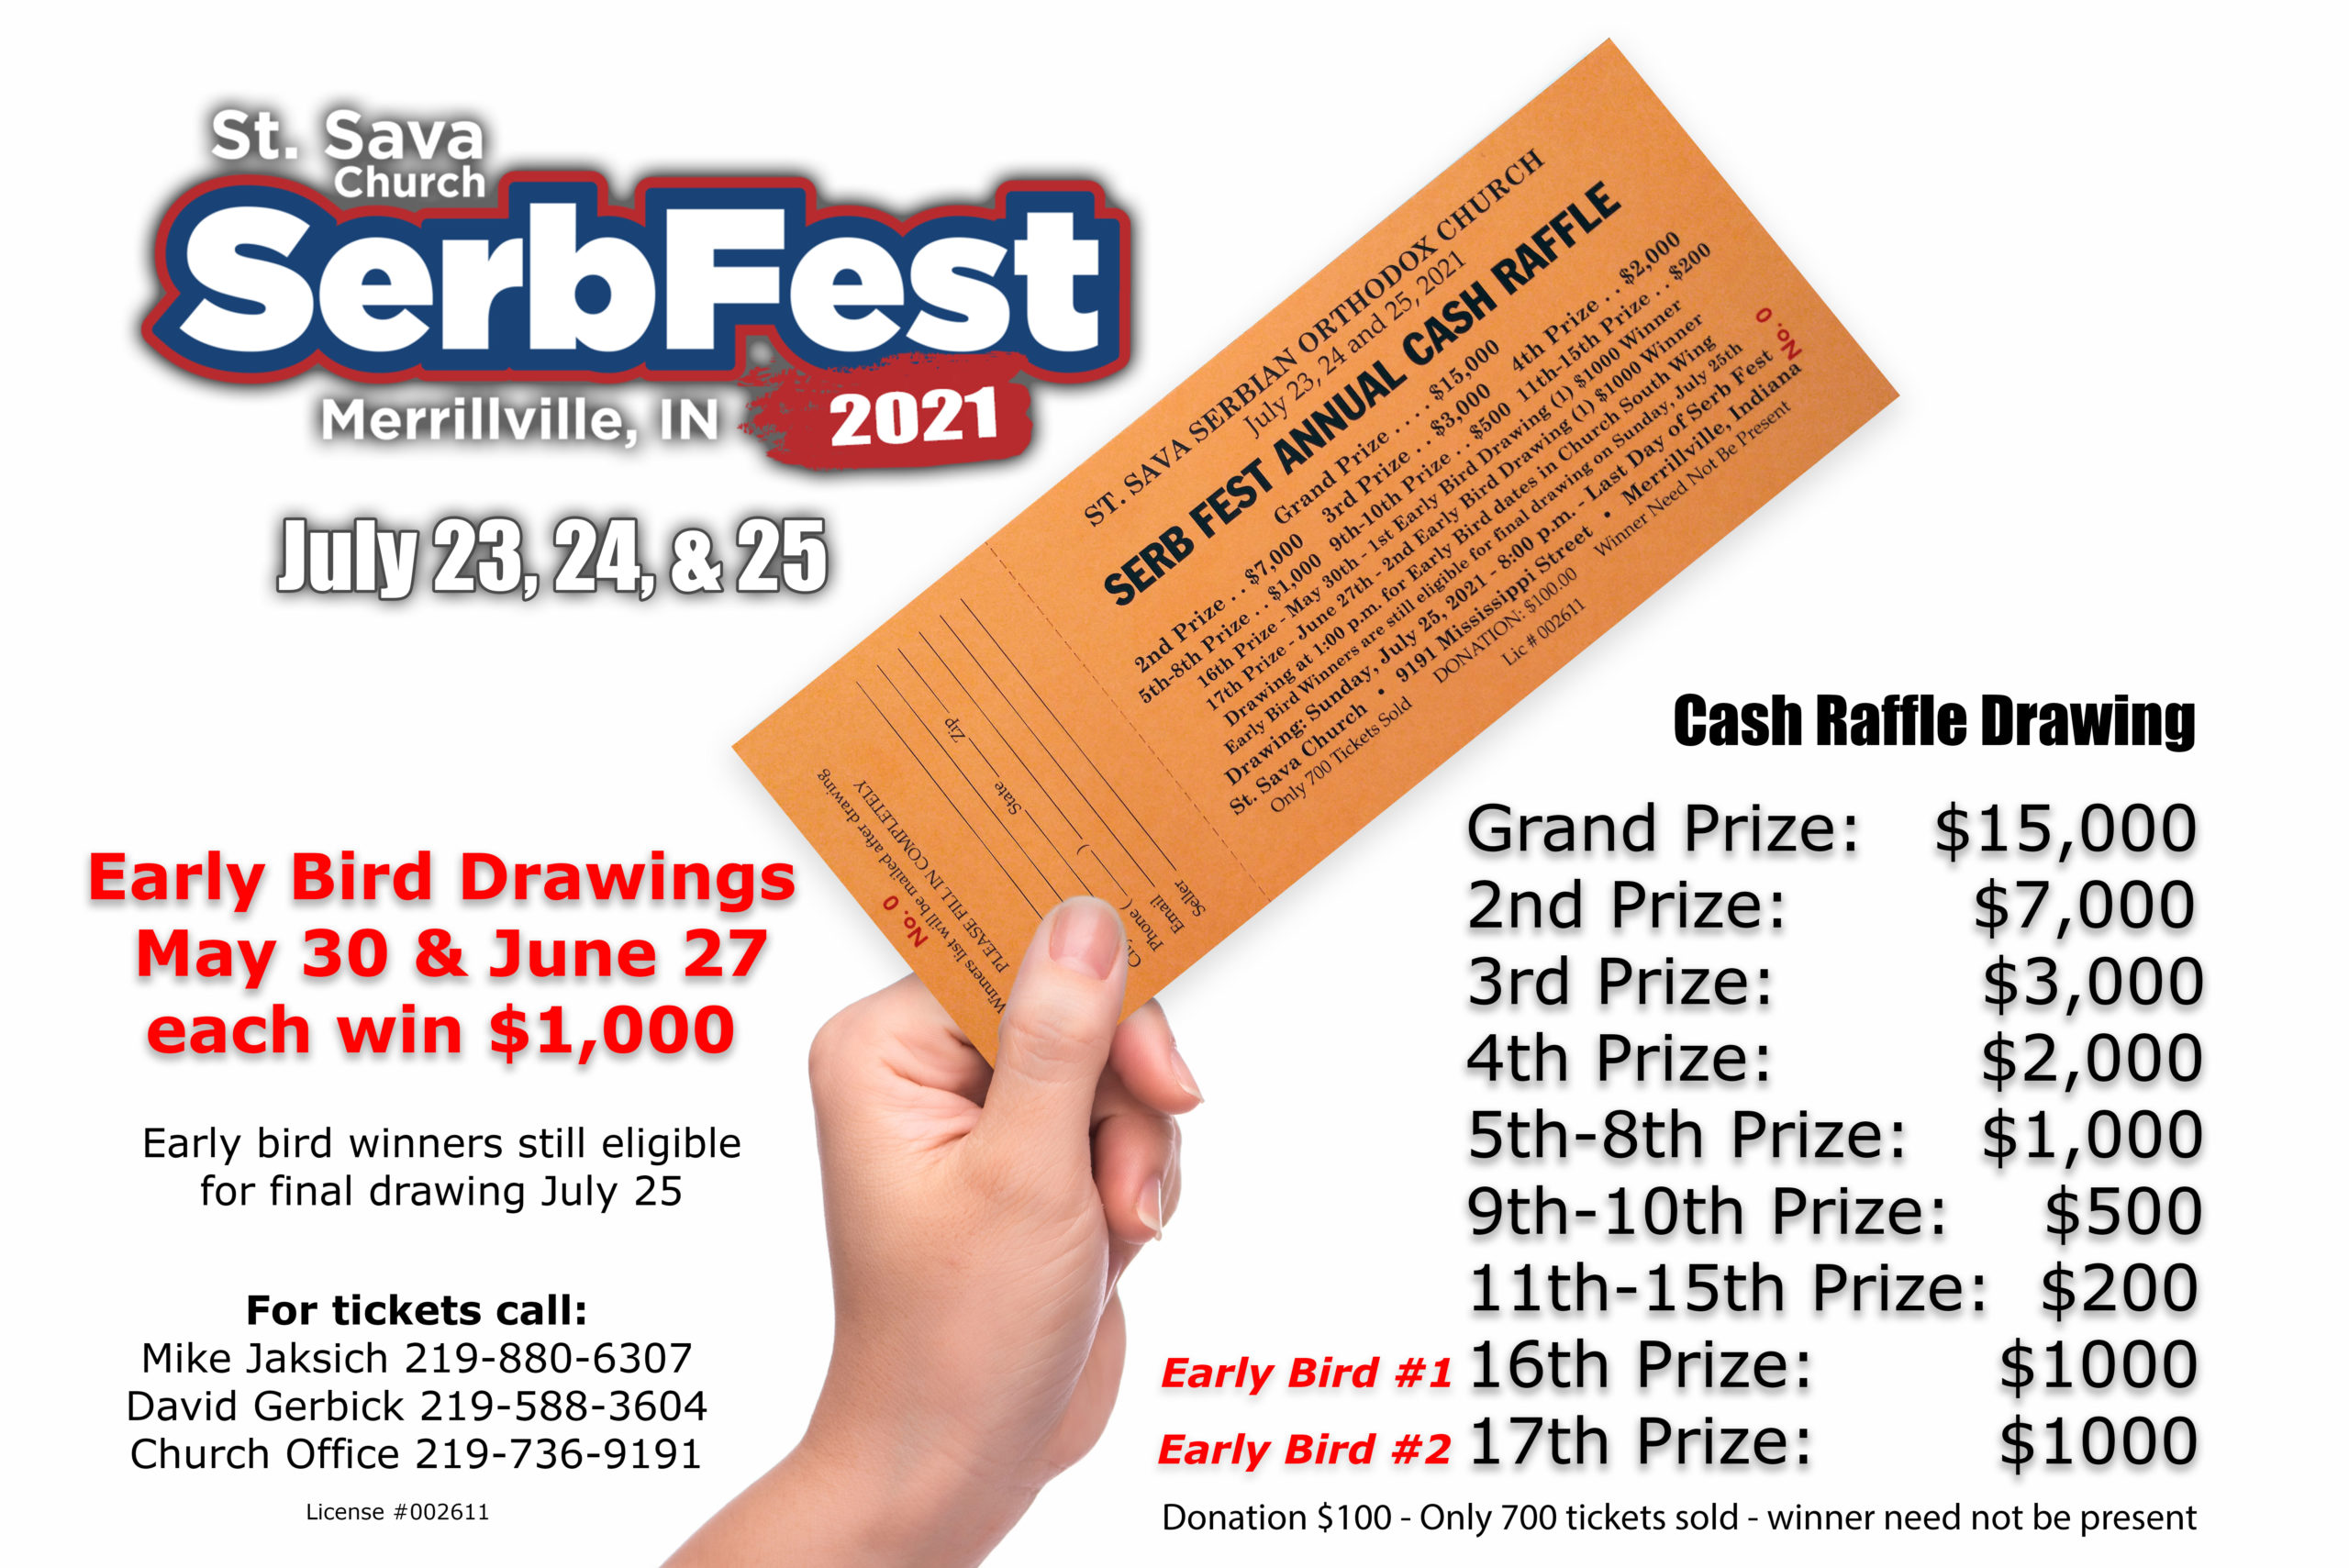 Serb Fest Annual Cash Raffle – Tickets Now Available at St. Sava, Merrillville, IN